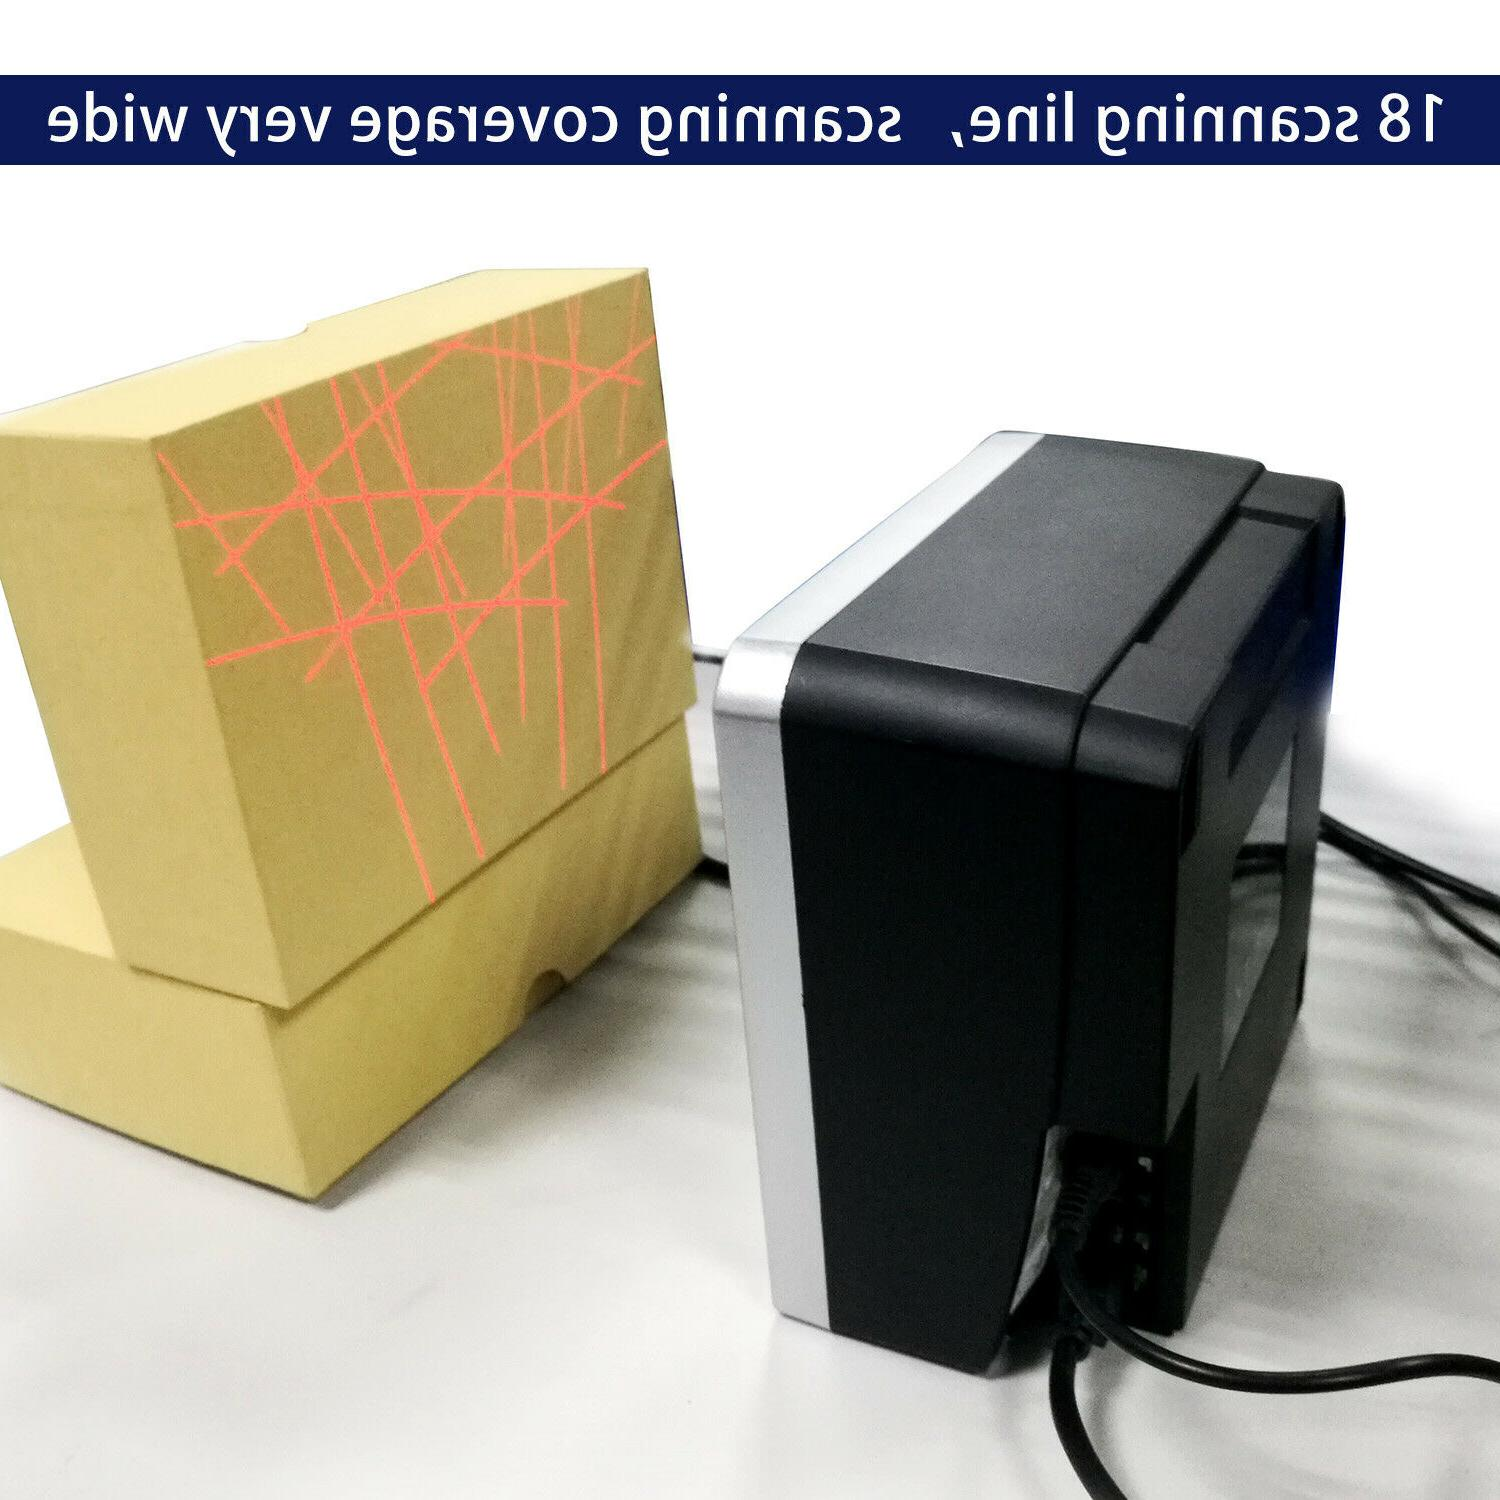 1D Scanner Omnidirectional Automatic Barcode Reader